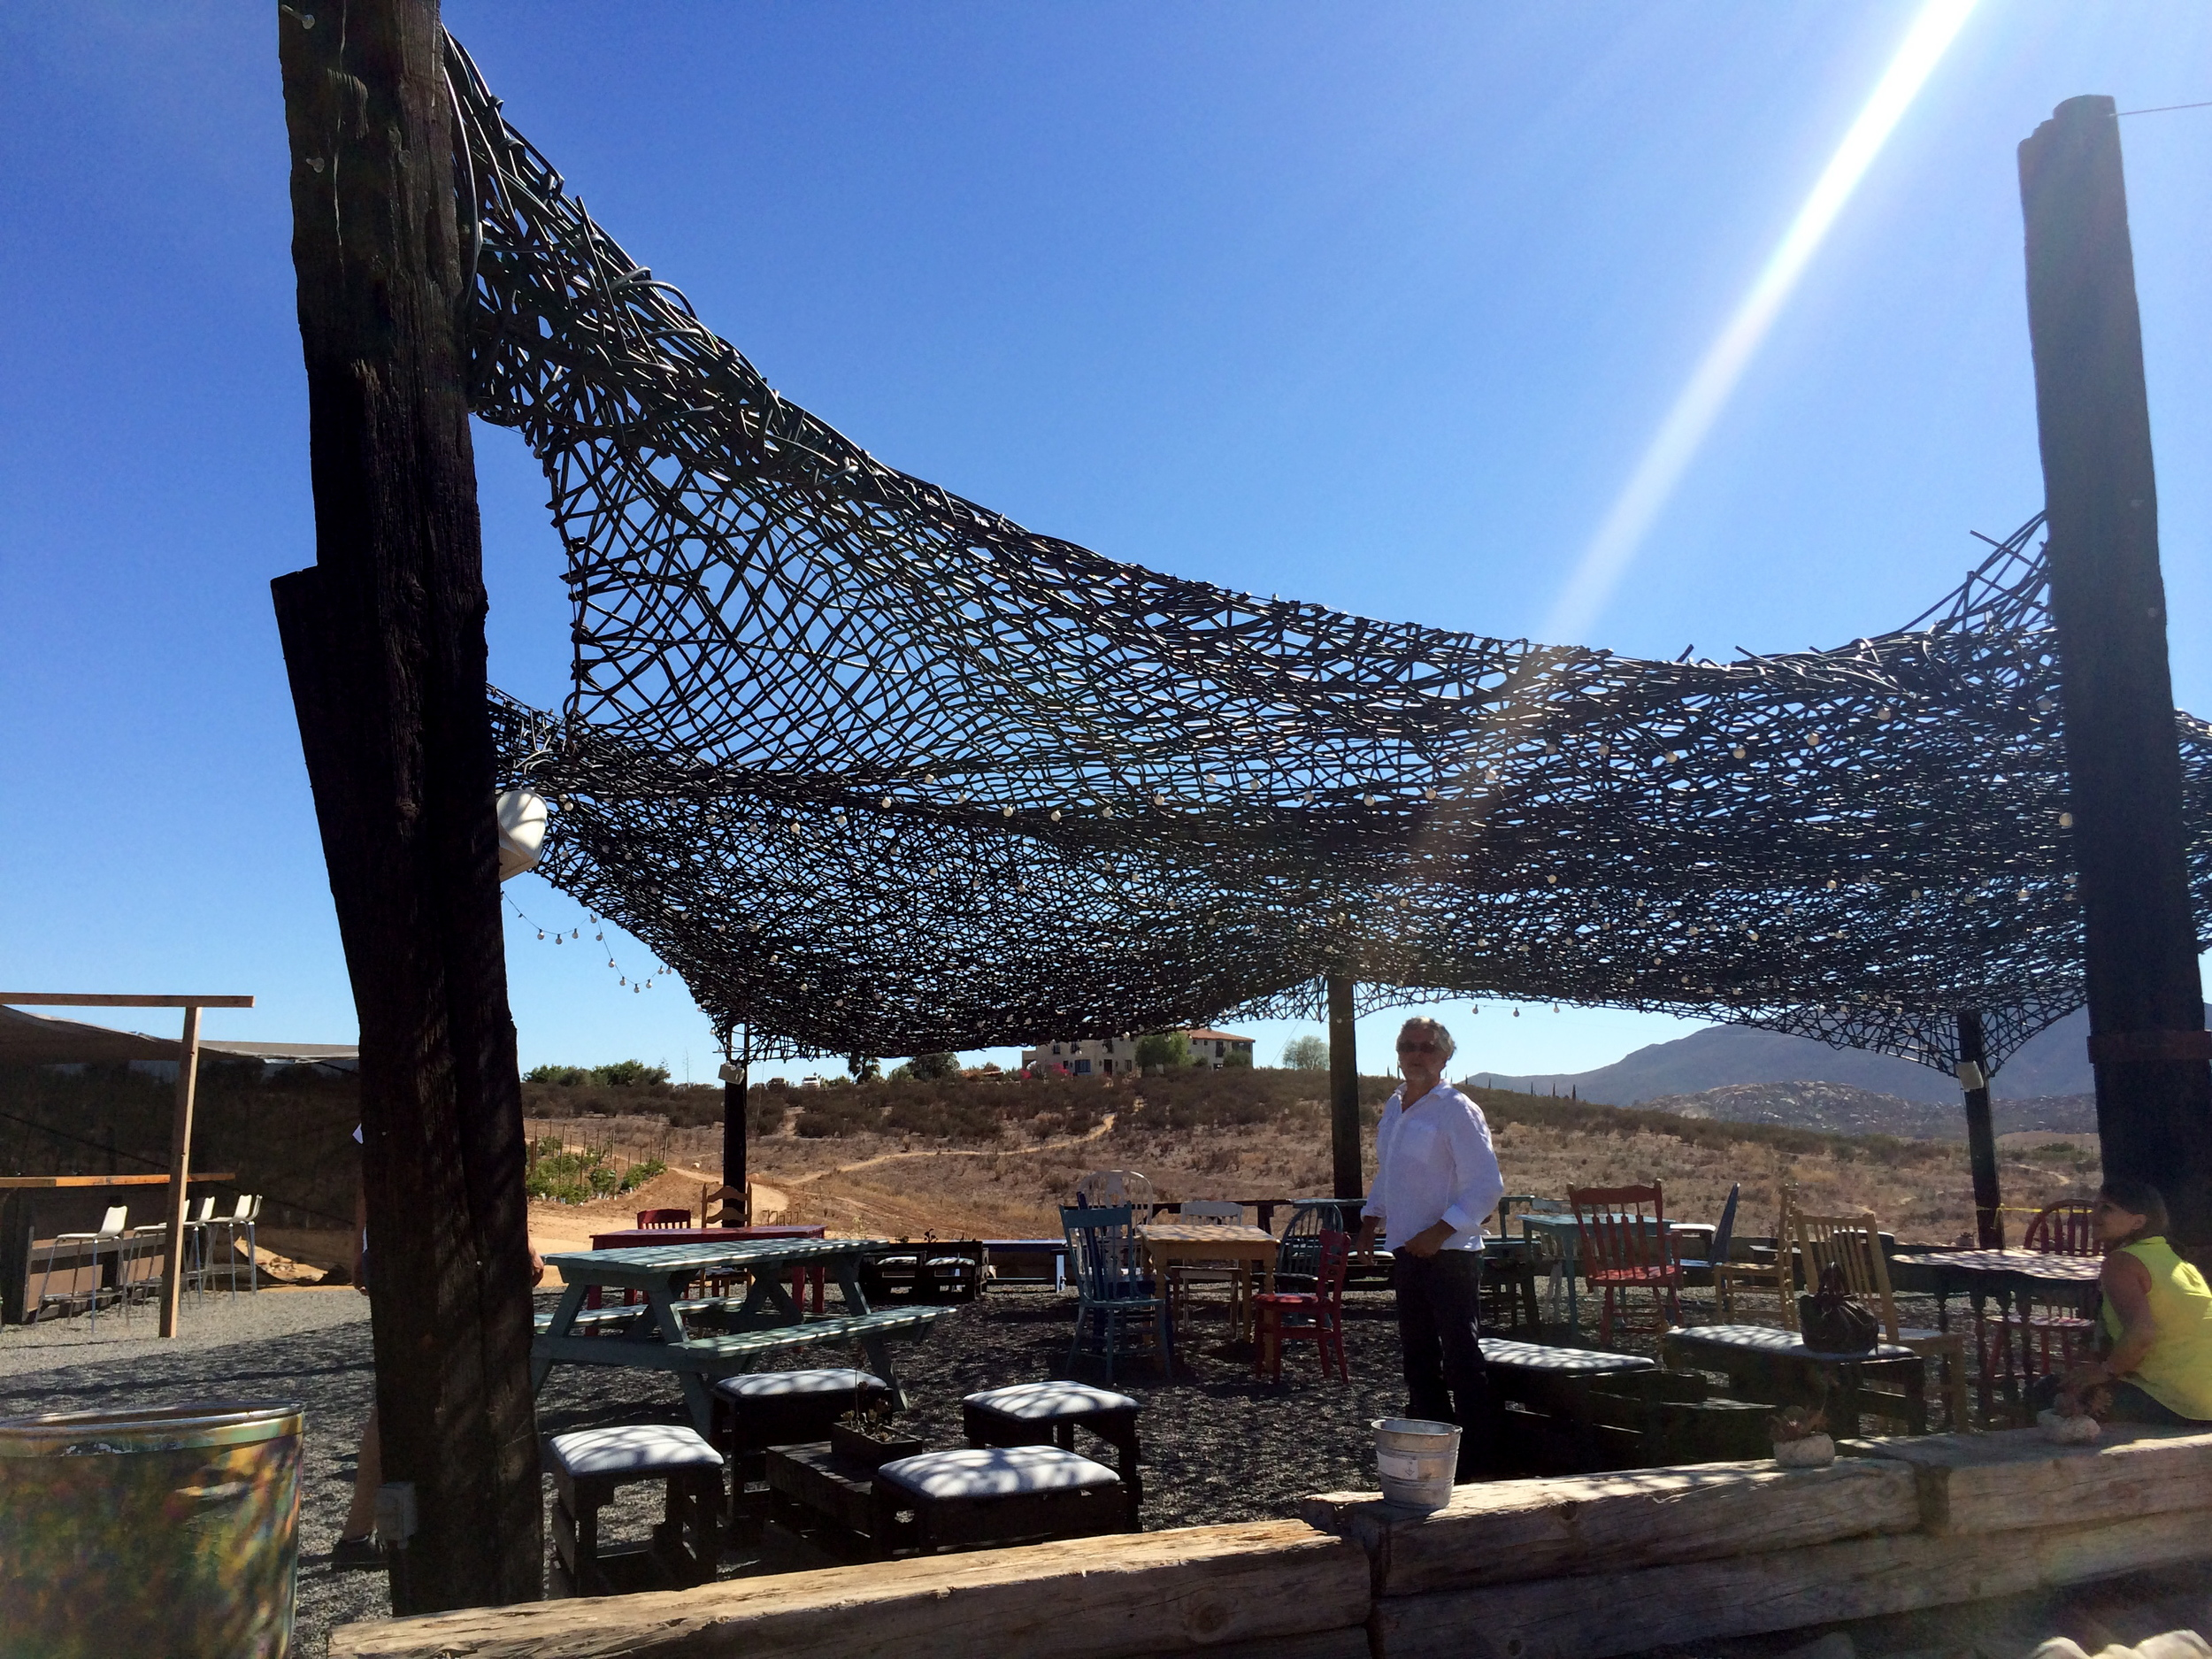 Shade structure made from re-purposed irrigation tubing, by architect Alejandro de'Acosta.